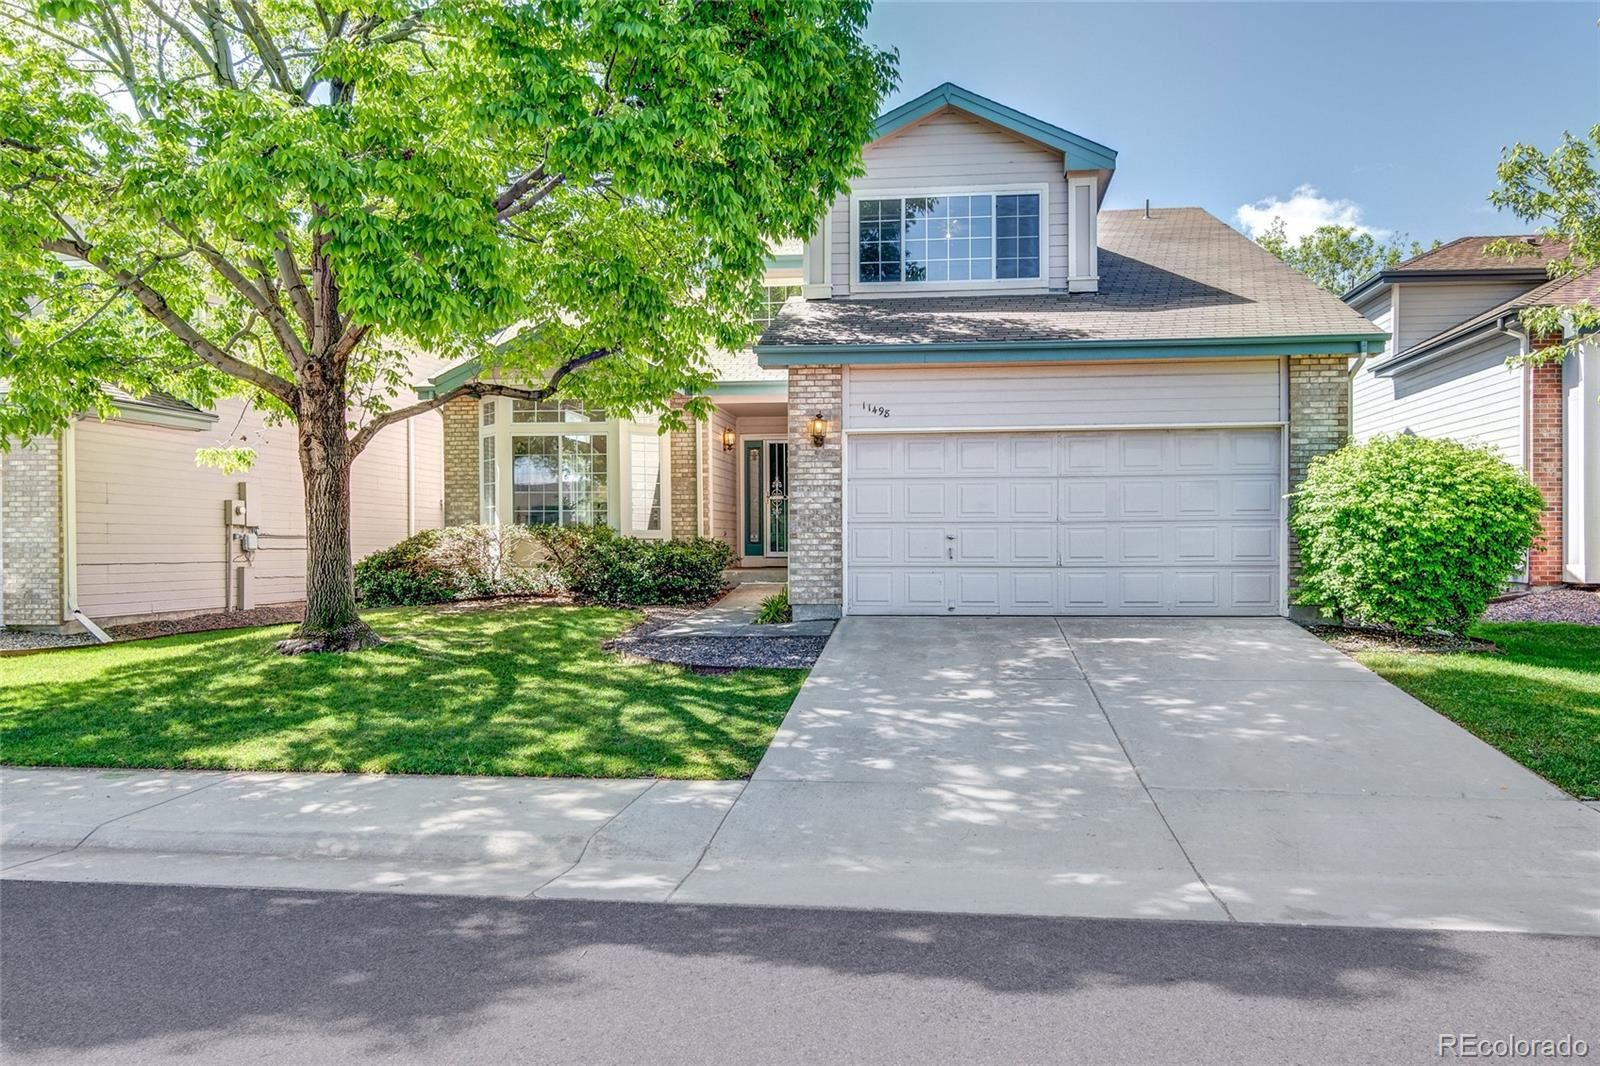 11498 E Baltic Place, Aurora, CO 80014 - #: 7231153